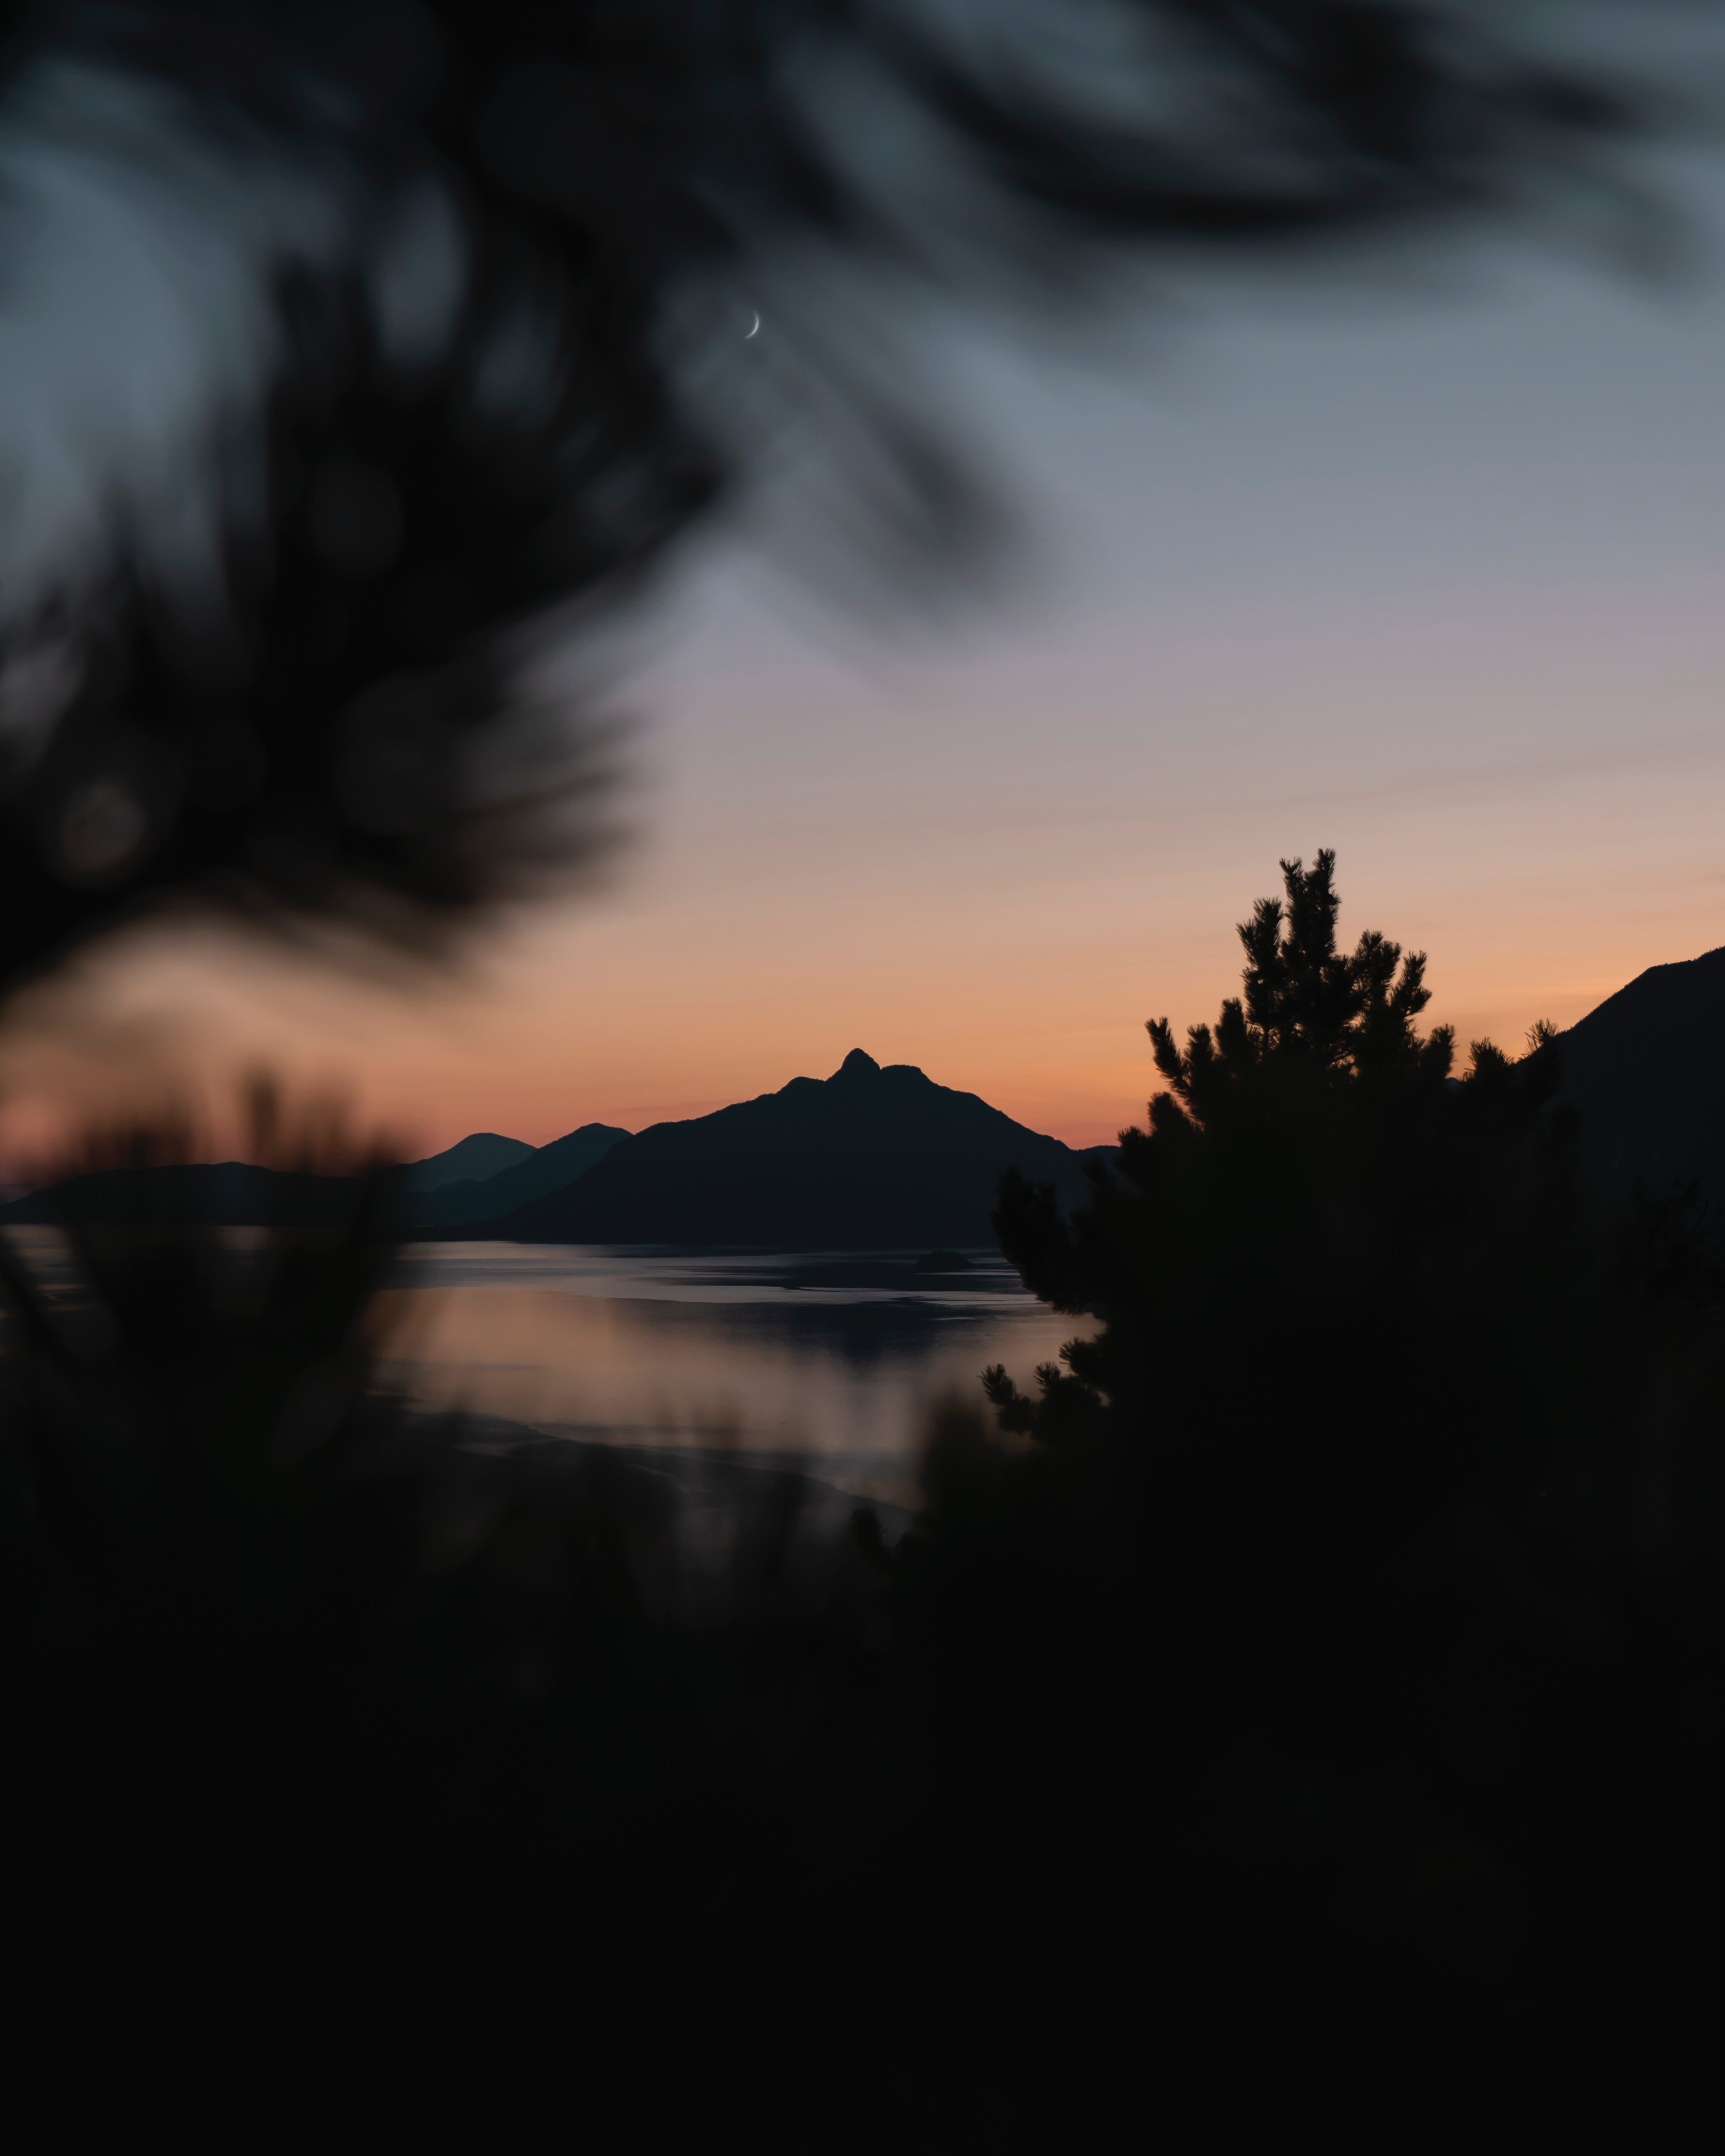 153083 download wallpaper Dark, Sunset, Mountains, Night, Blur, Smooth, Branches screensavers and pictures for free